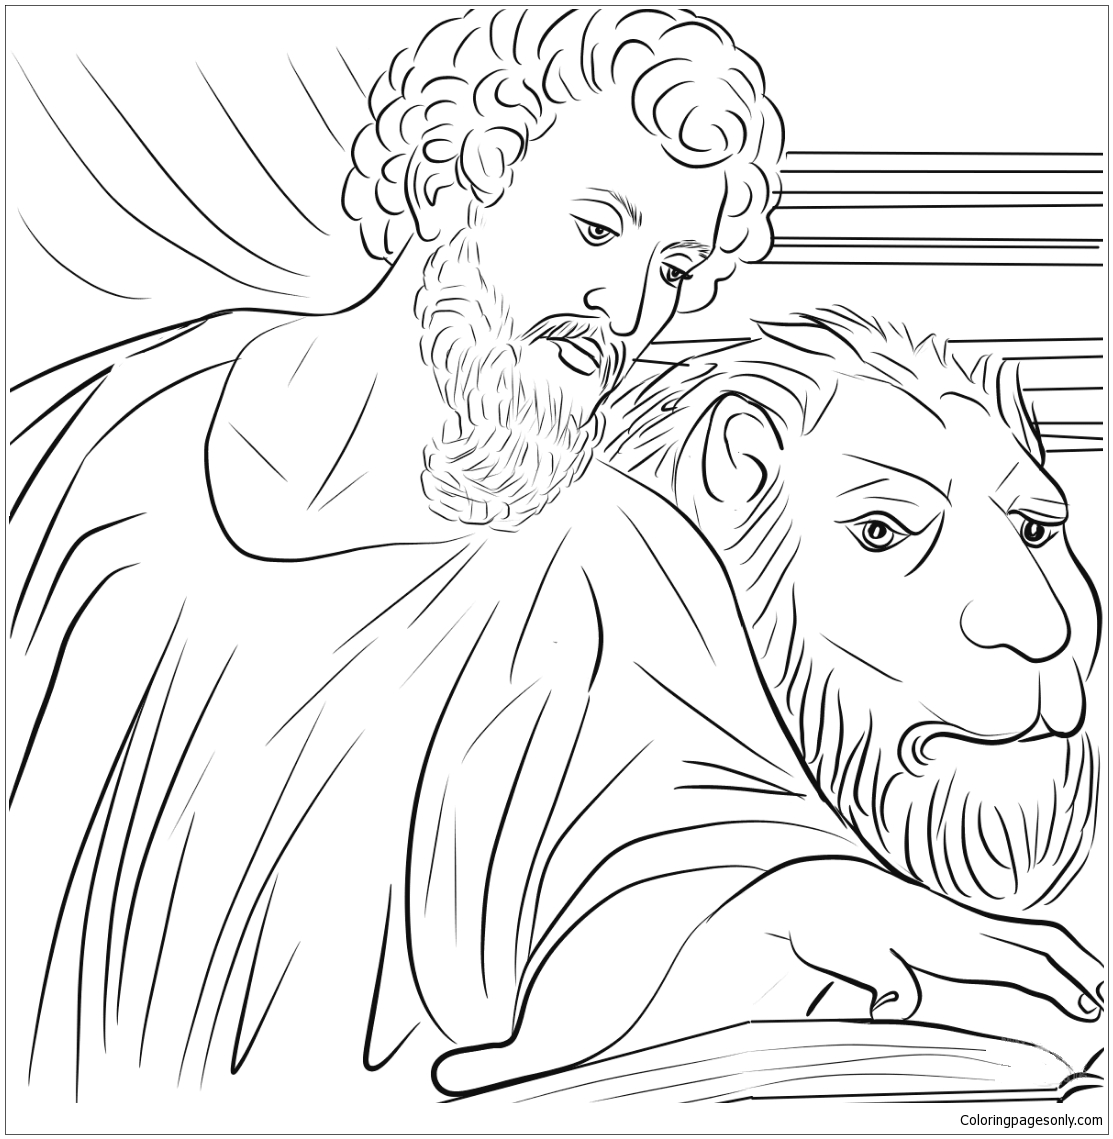 Saint Mark the Evangelist Coloring Page - Free Coloring Pages Online